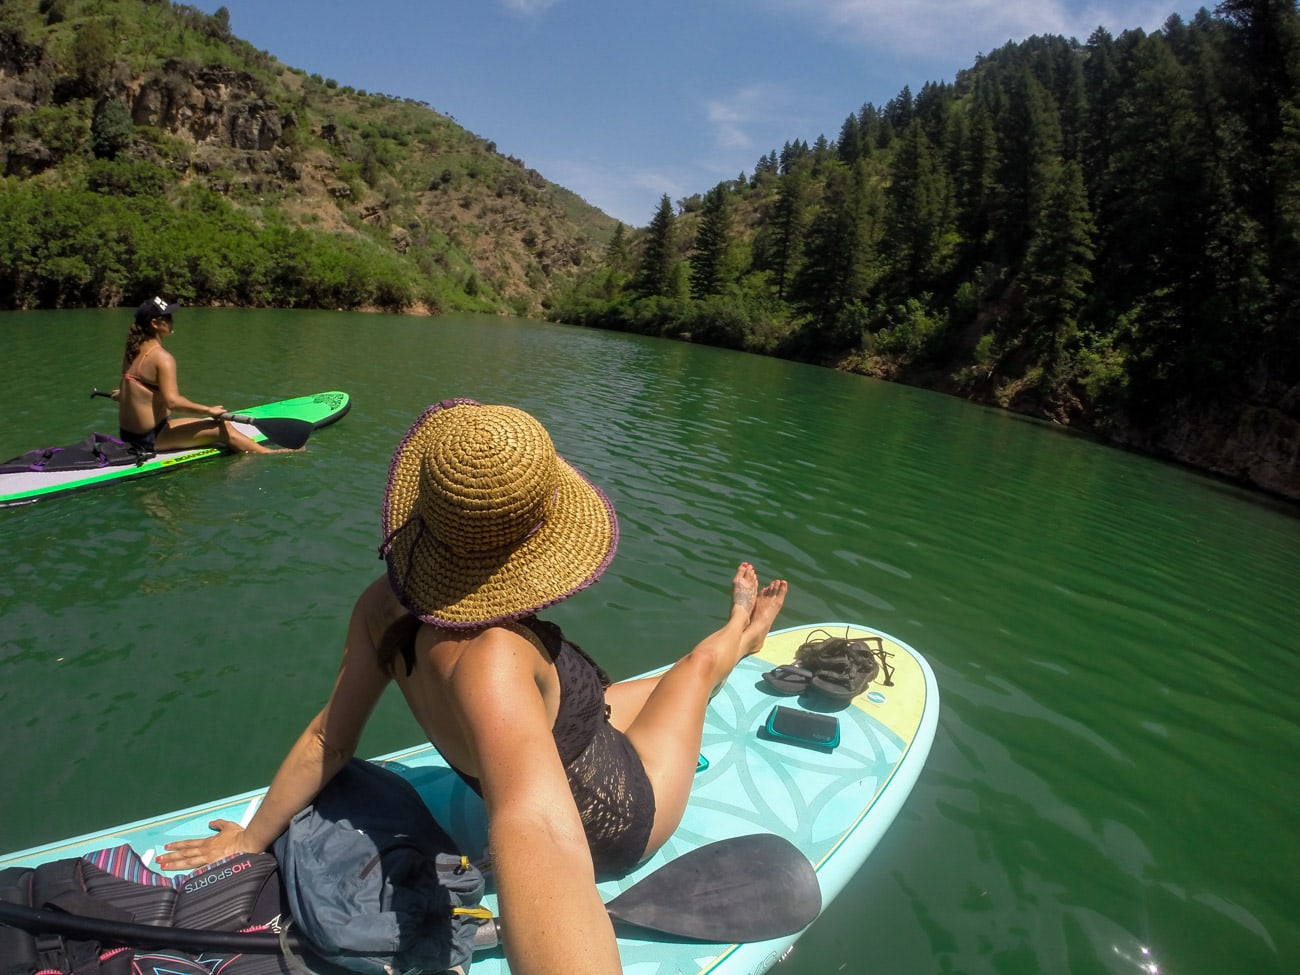 Learn my favorite GoPro tips and tricks to improve your travel photography.